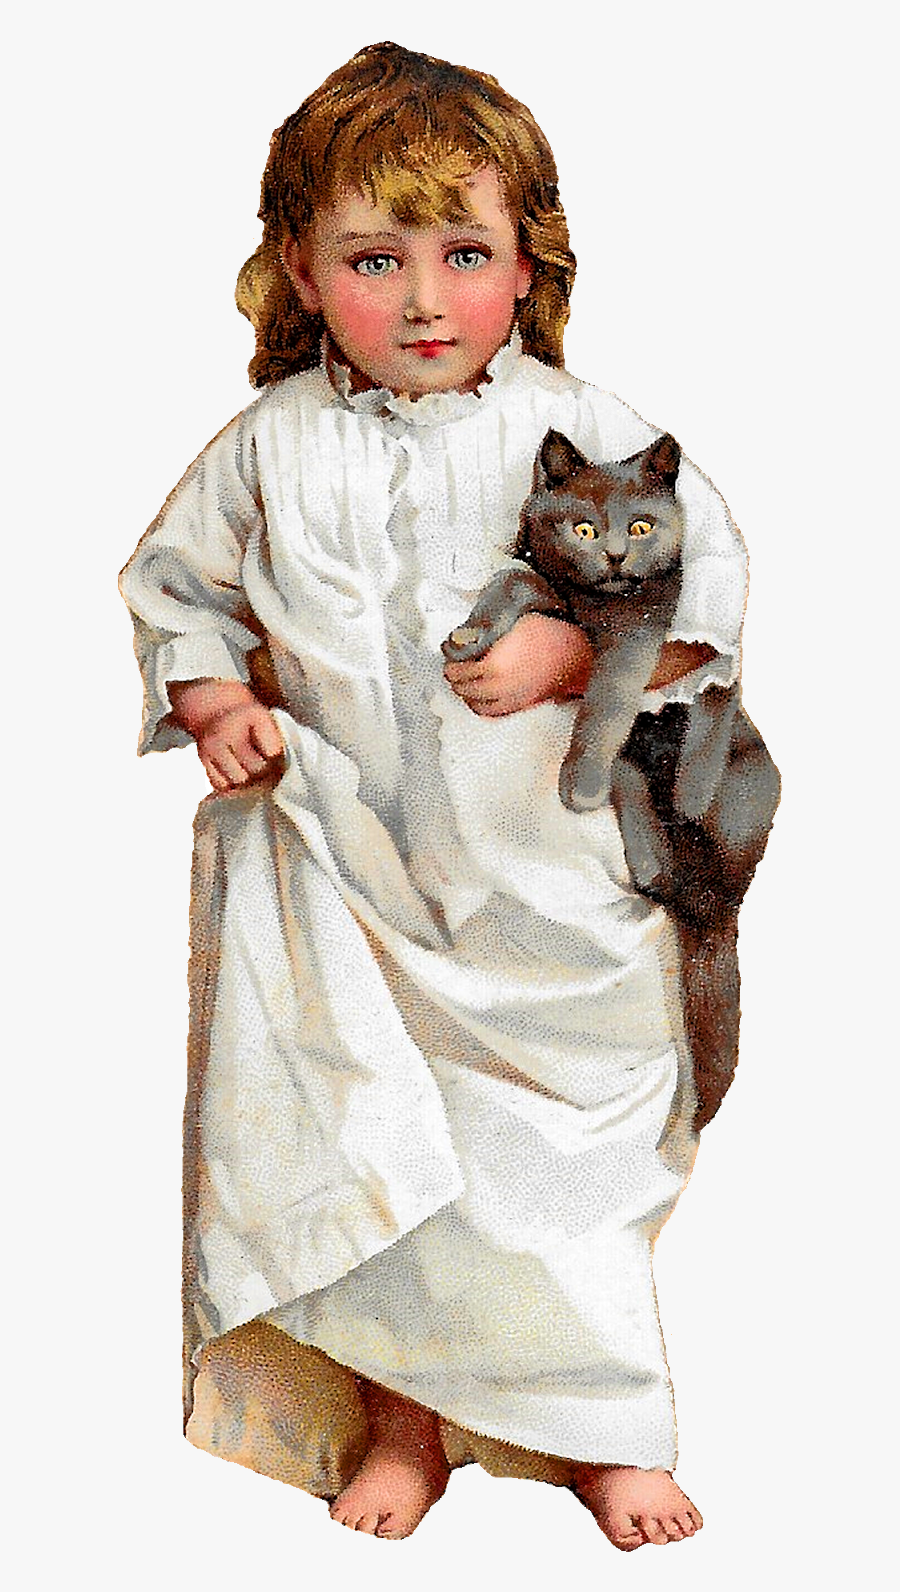 Cat Girl Bedtime Image Pajamas Clipart Antique Illustration - Girl And Cat Clipart Png, Transparent Clipart